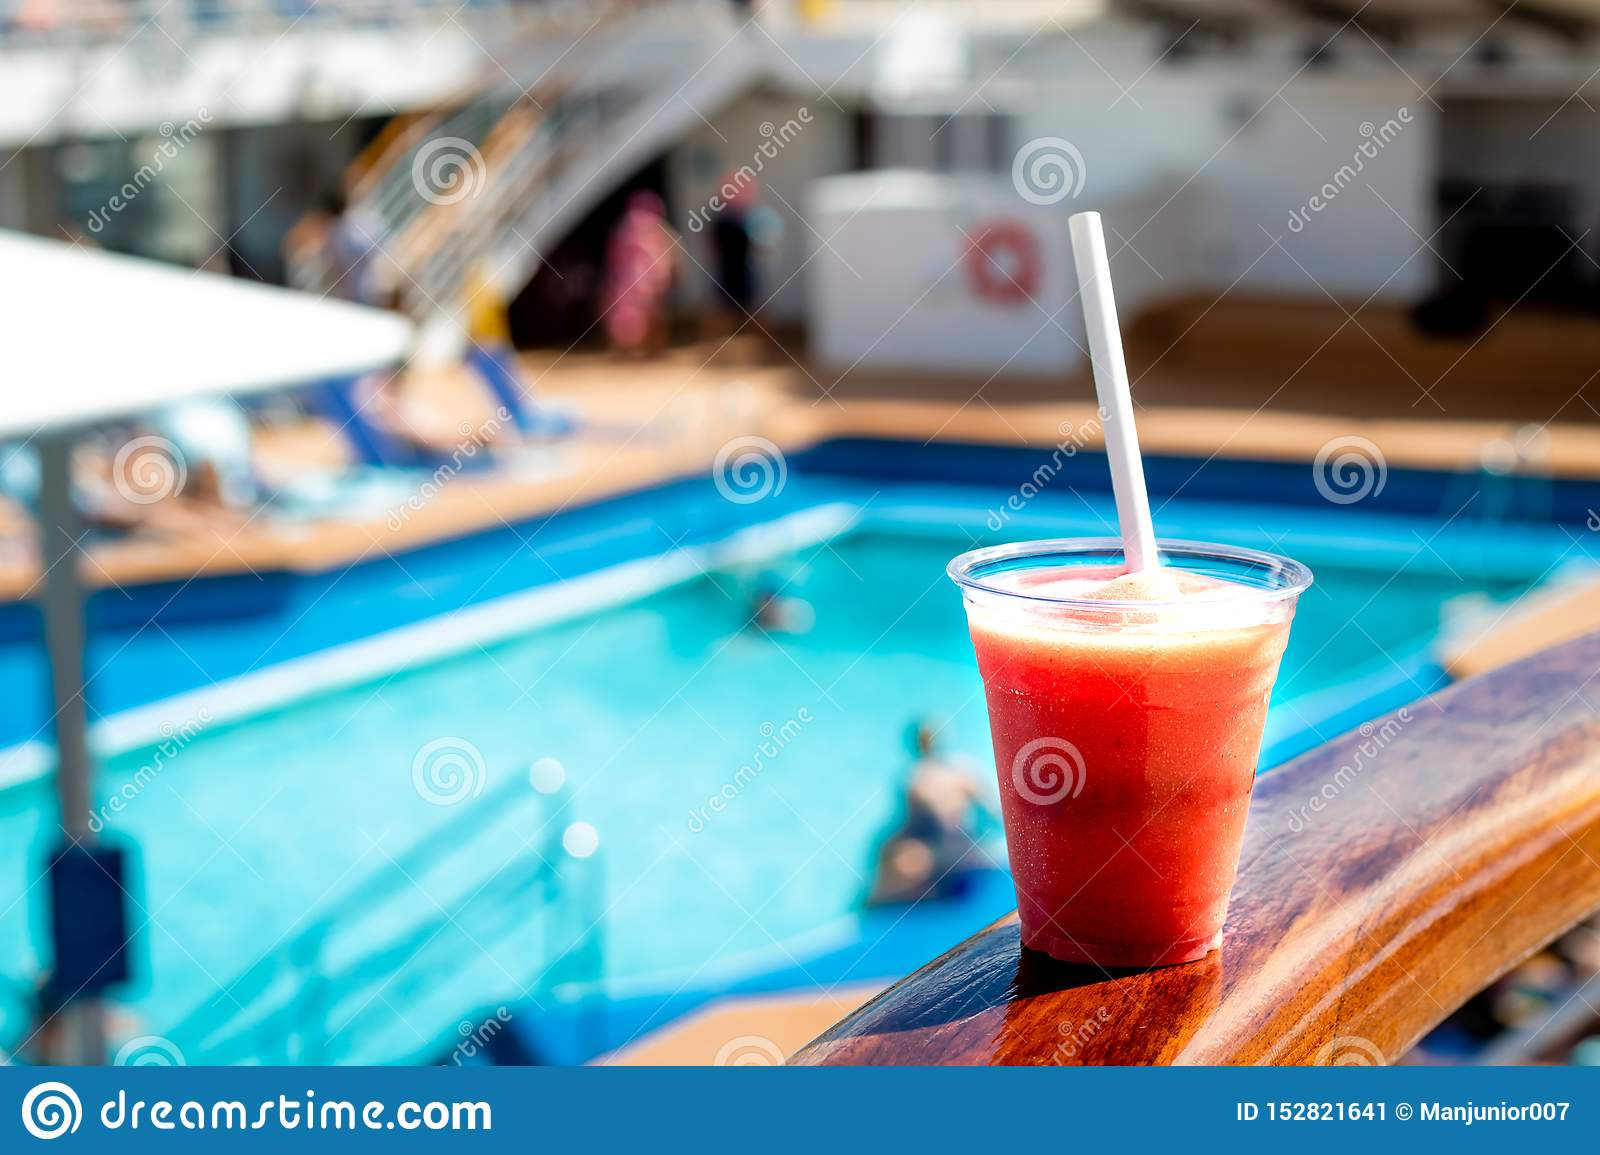 Rotes Cocktailgetränk im Pool